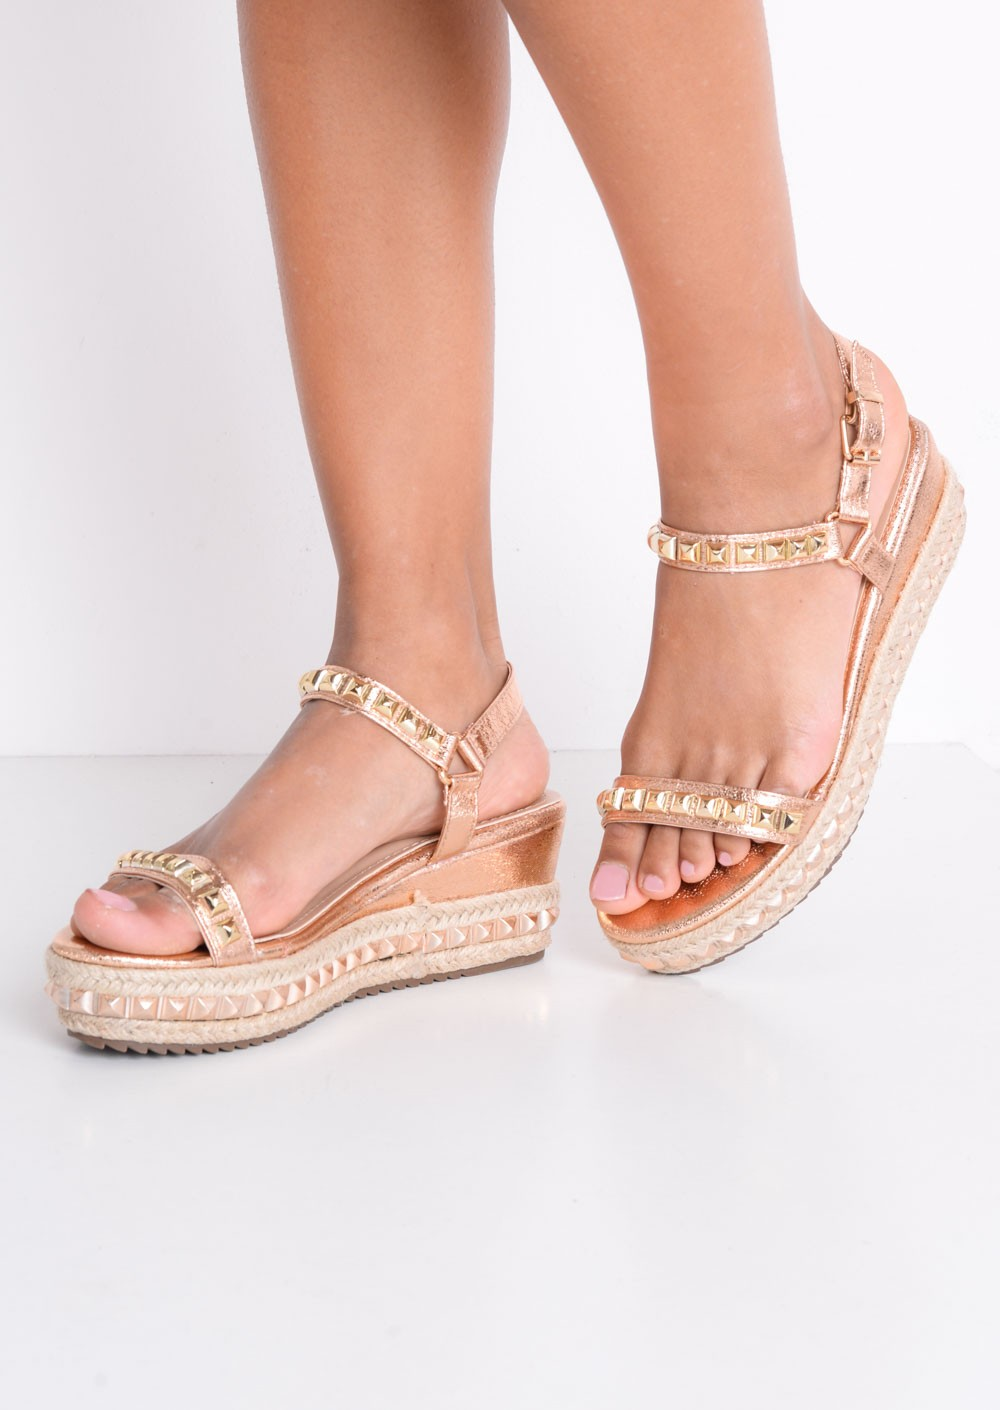 Wedge Shoes On Sale Uk